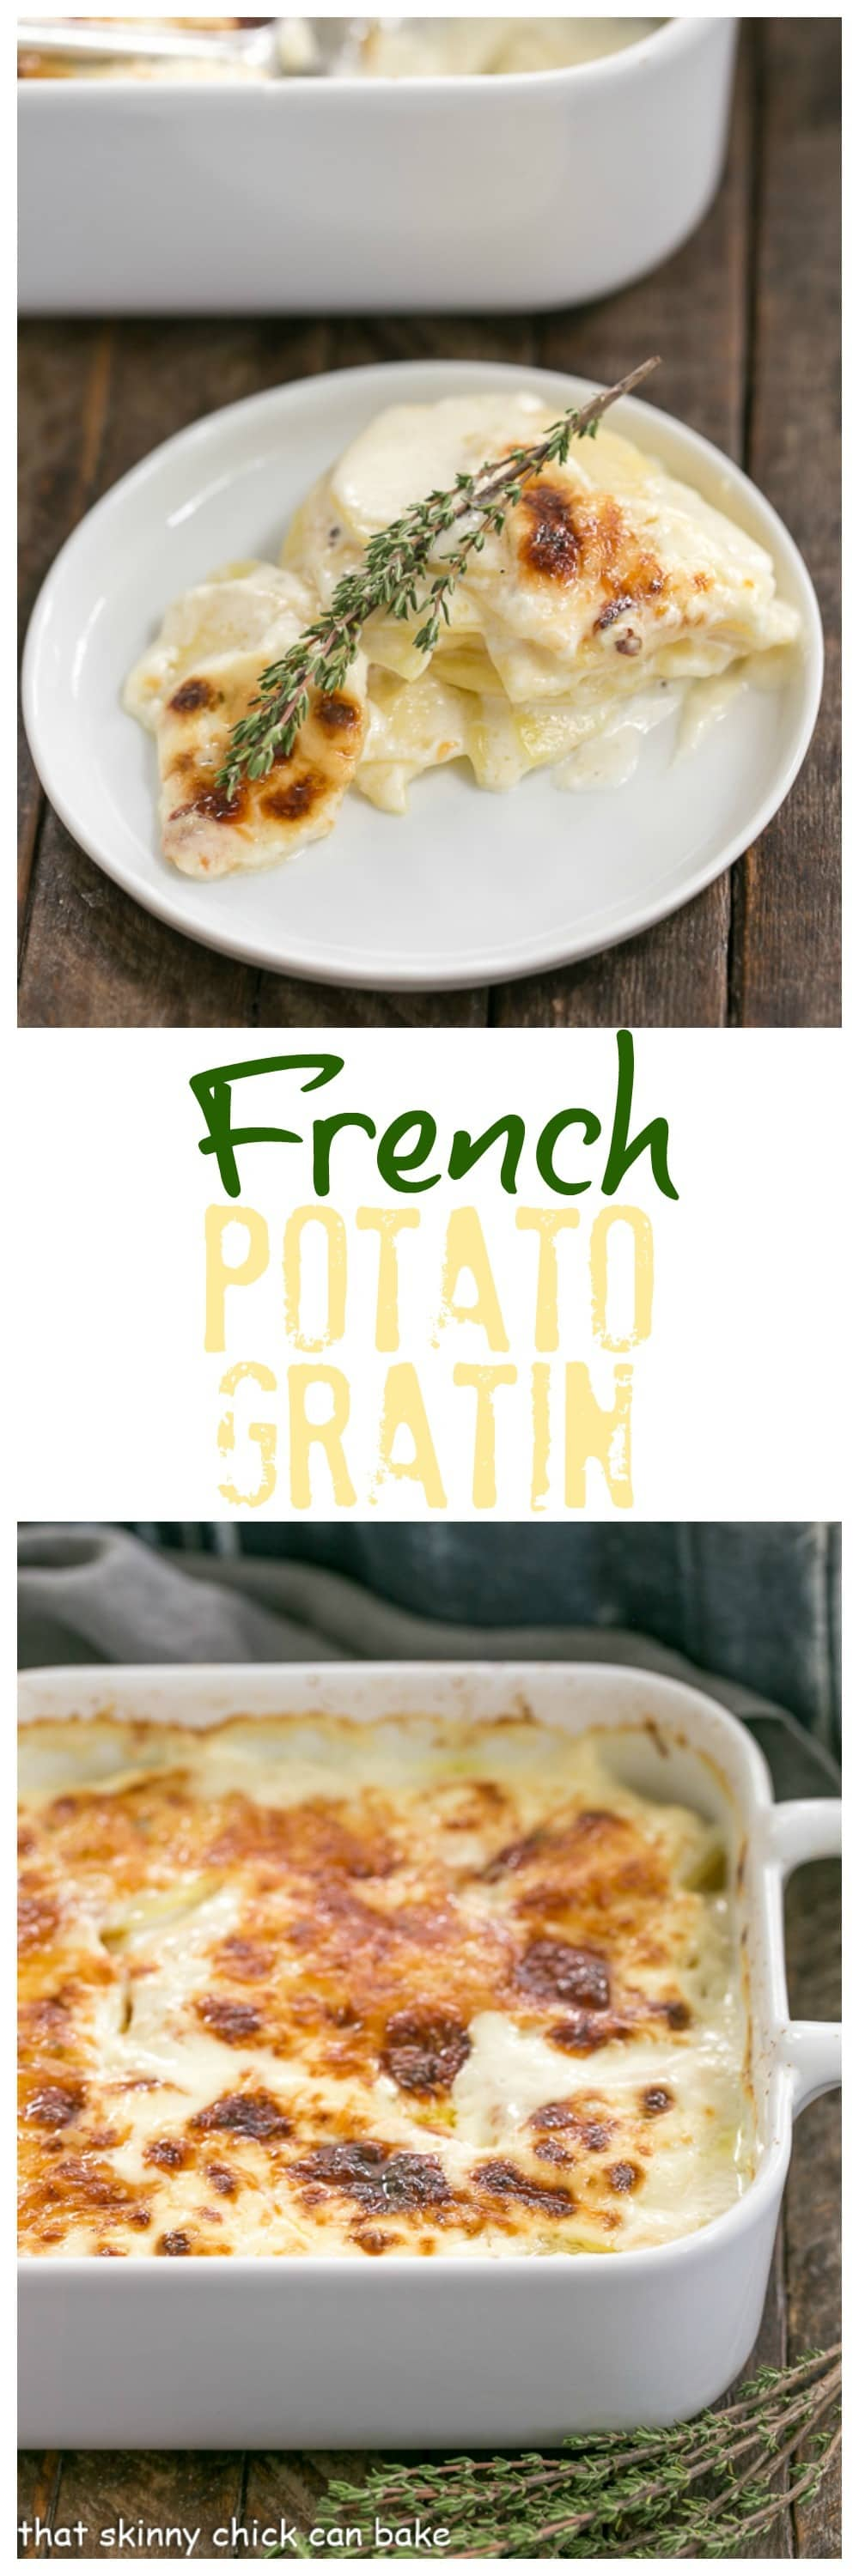 French Potato Gratin - A exquisite creamy potato casserole kissed with garlic, thyme and topped with Gruyere cheese! #potatoes #gratin #pommesdauphinois #casserole